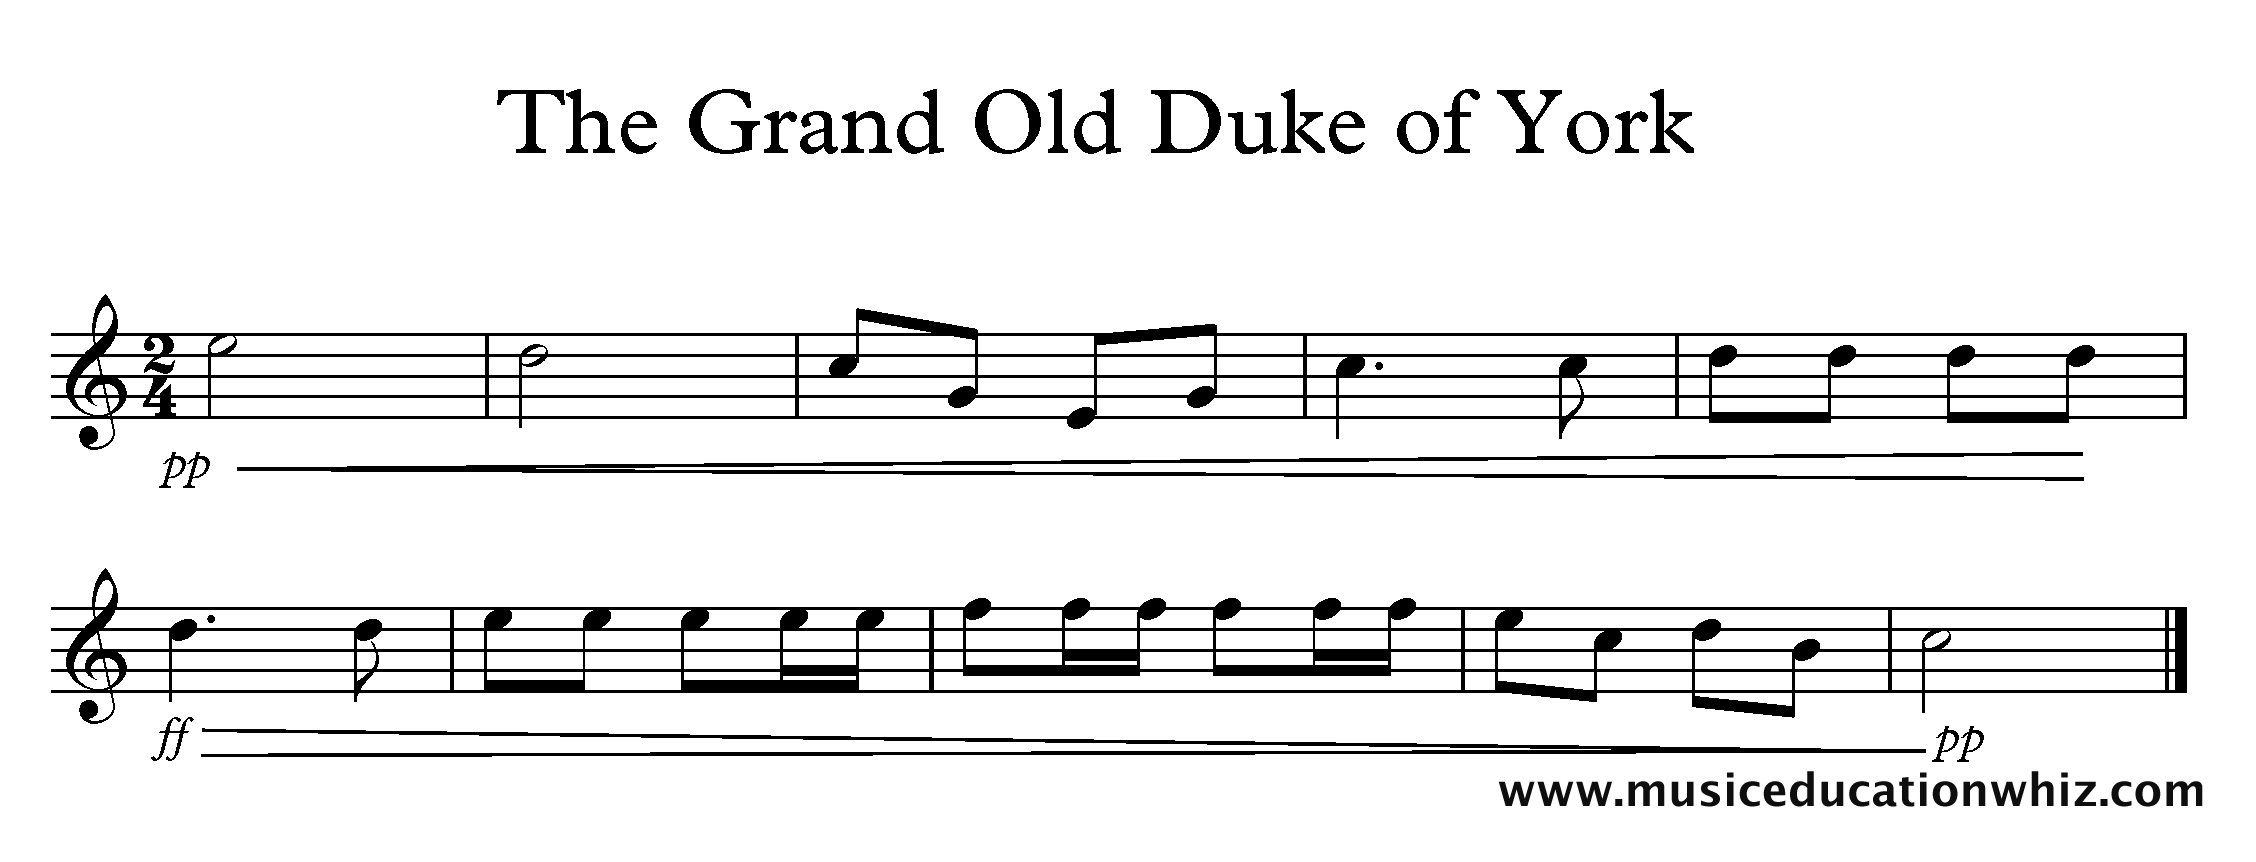 The Grand Old Duke of York melody starting pp followed by a crescendo hairpin to the middle of the piece up to ff, followed by a diminuendo hairpin to pp at the end.